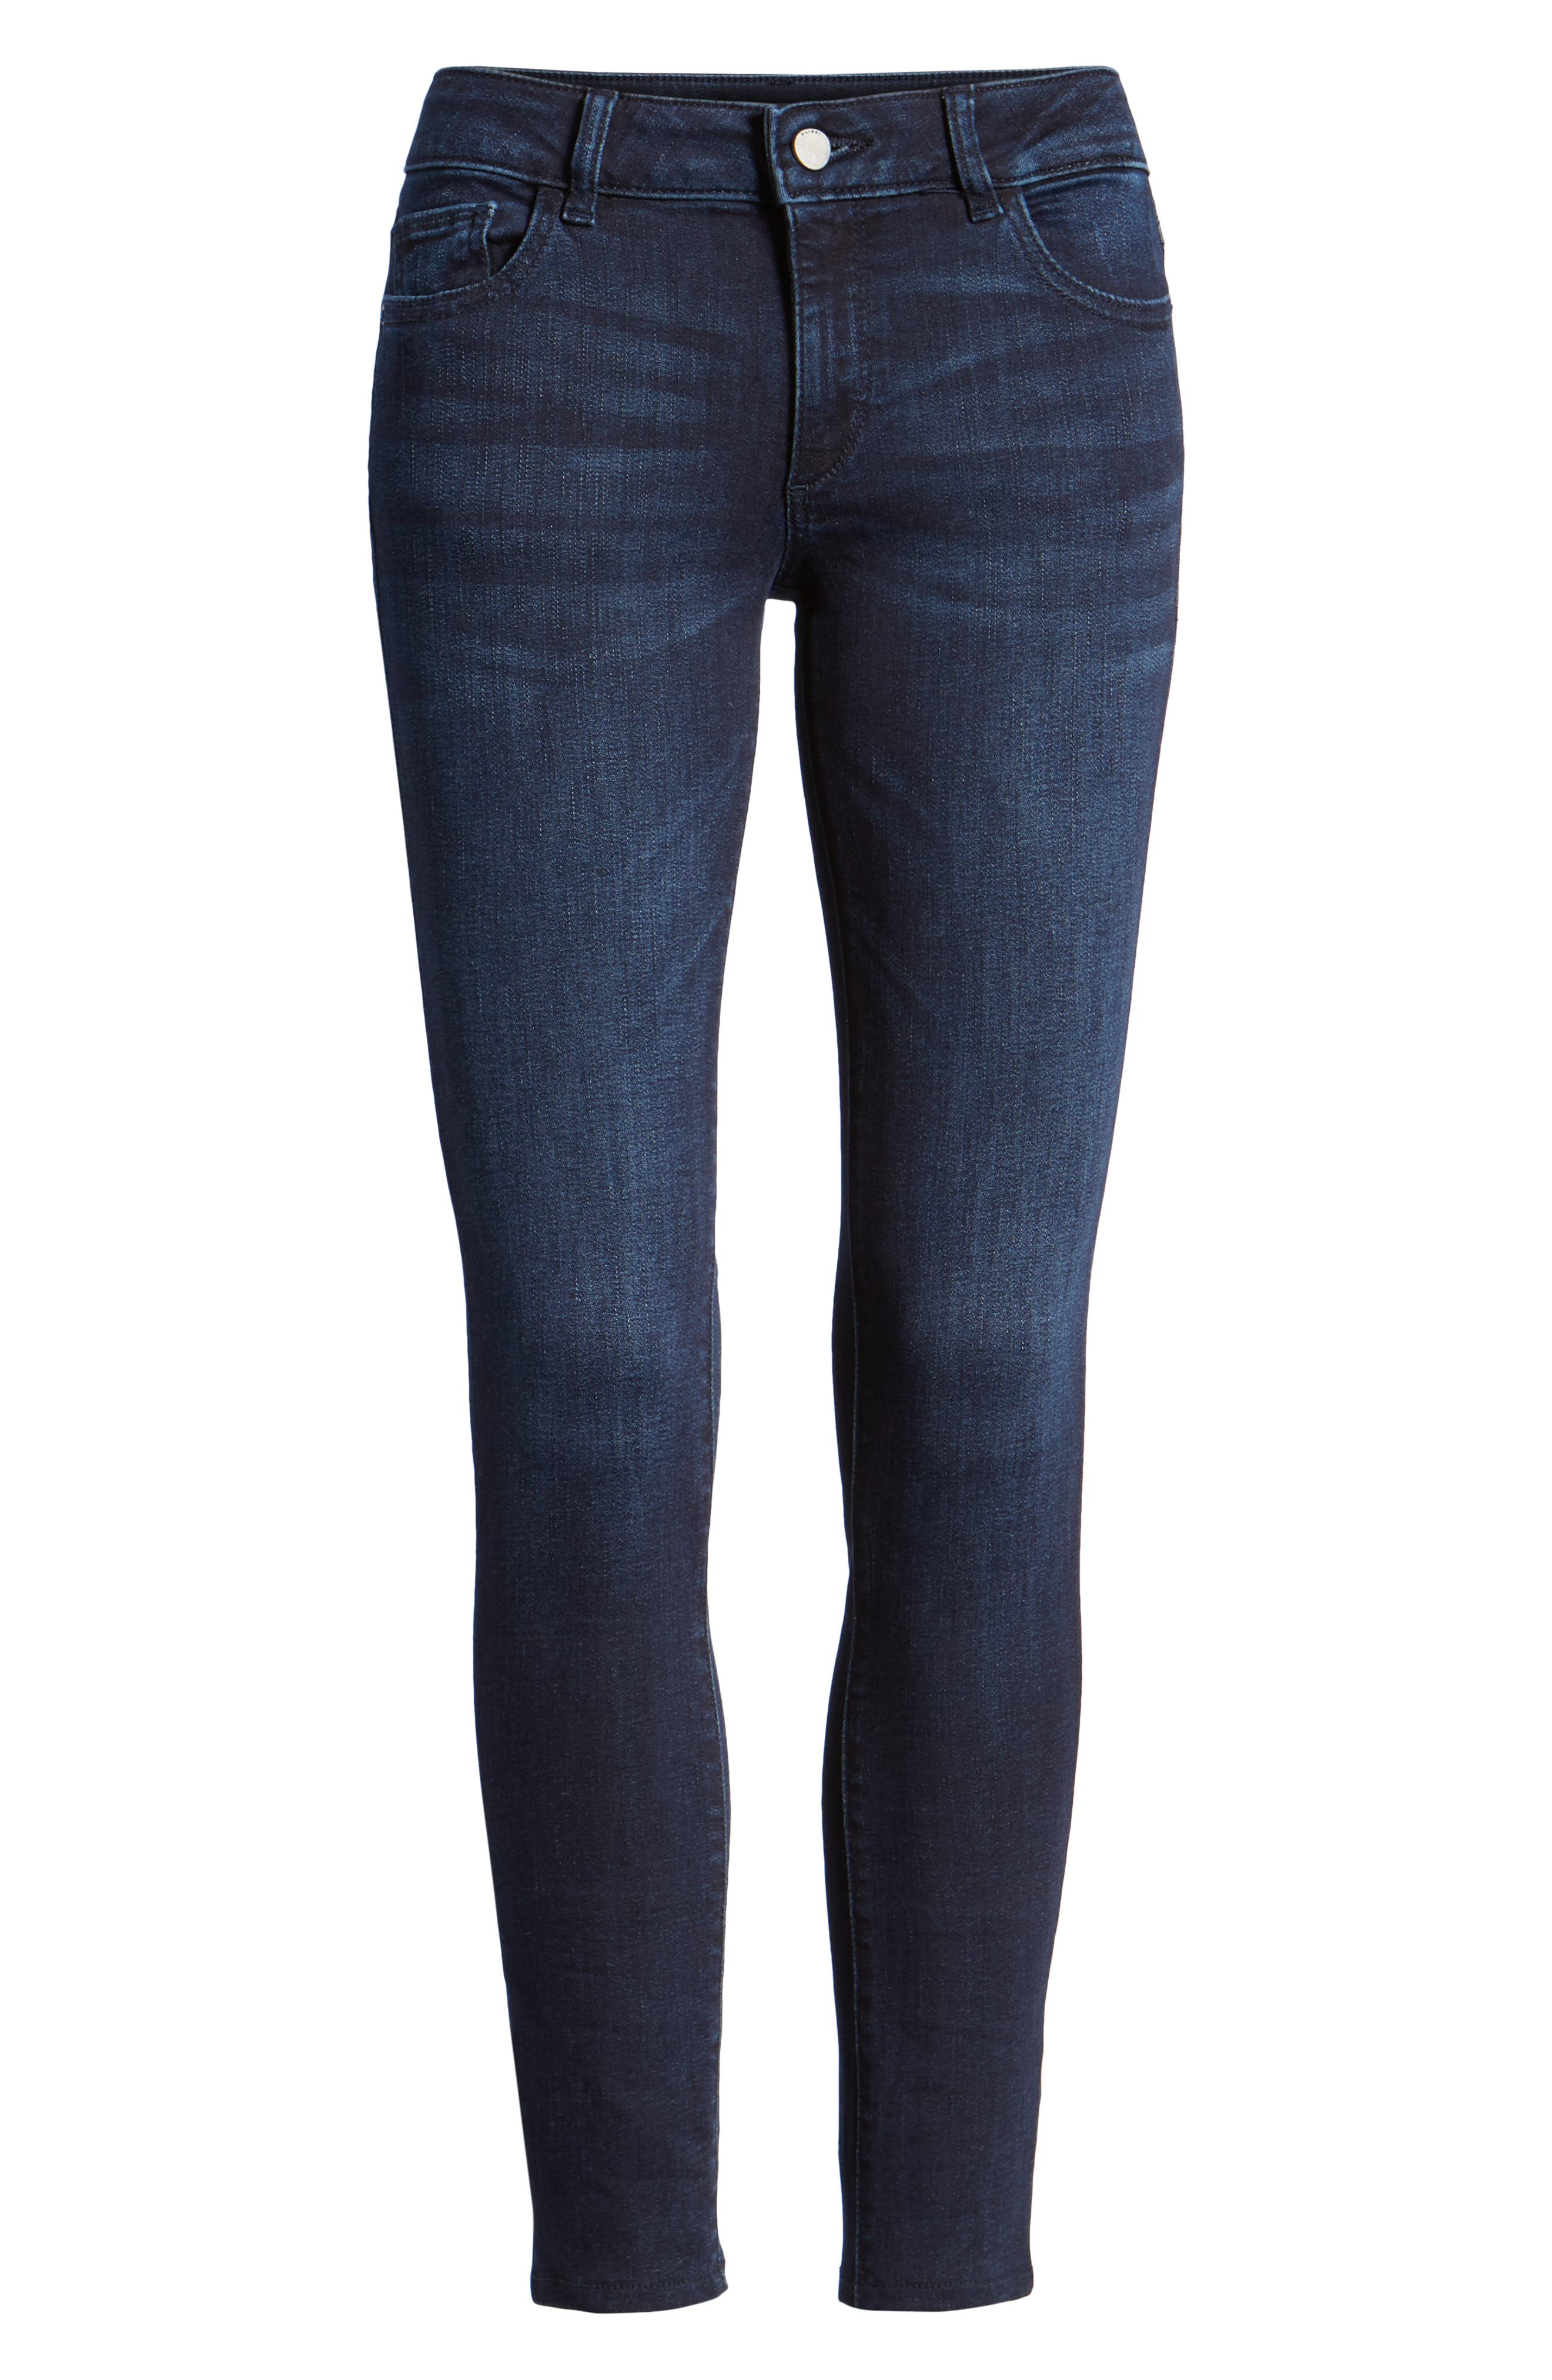 Emma Low Rise Ankle Skinny Jeans,                             Alternate thumbnail 7, color,                             NICHOLSON